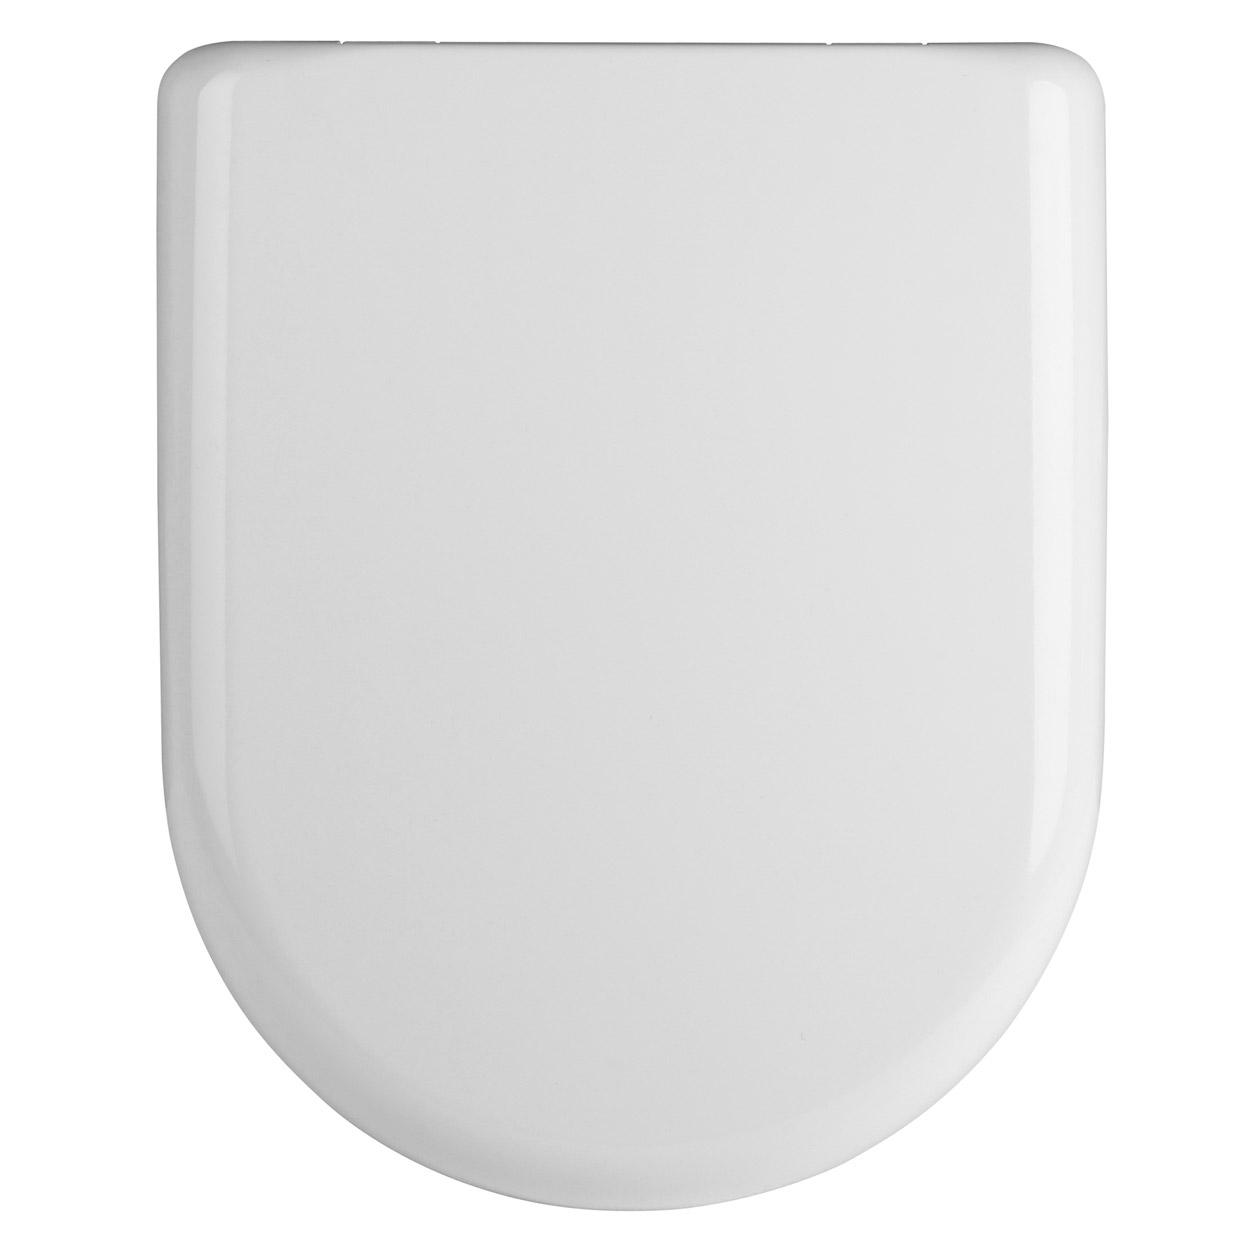 Premier Luxury D-Shaped Thermoplastic Toilet Seat, Soft Close Hinge, White-0